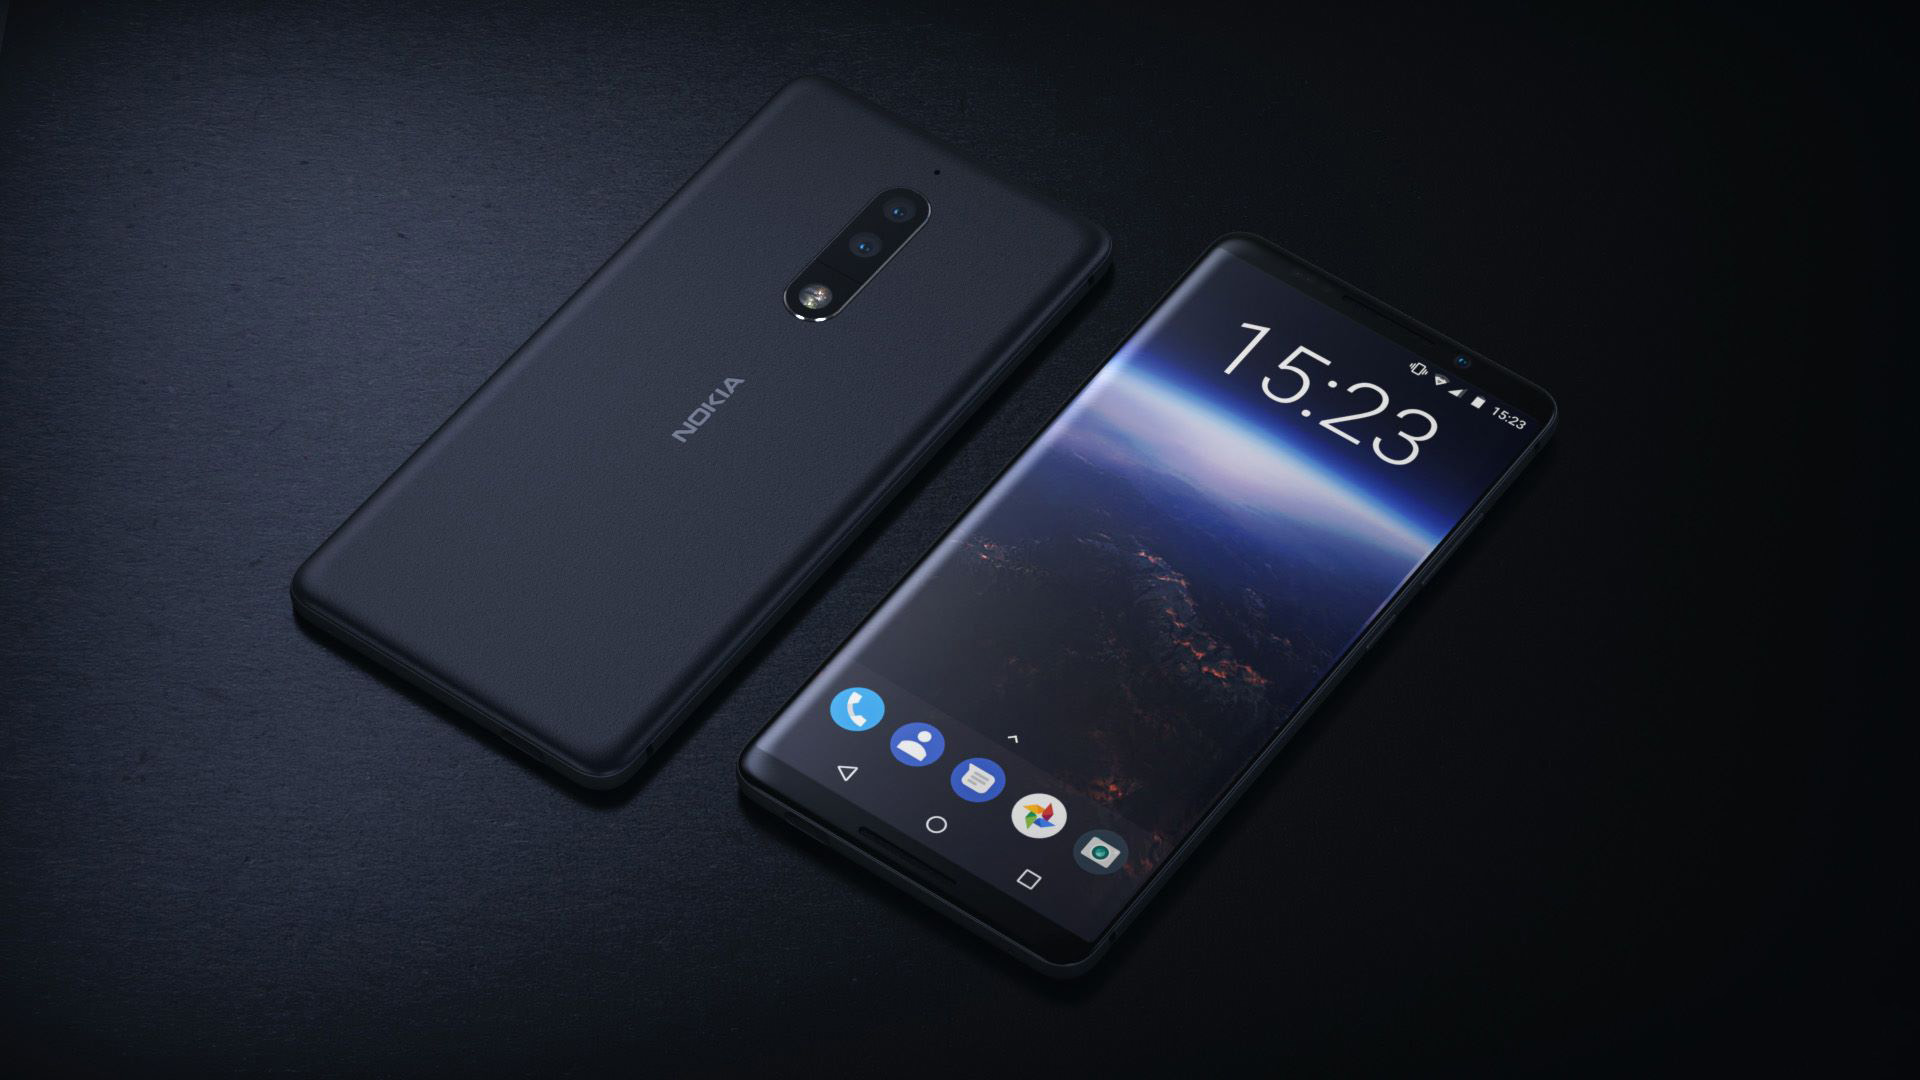 5 remarkable features of the Nokia 5.1